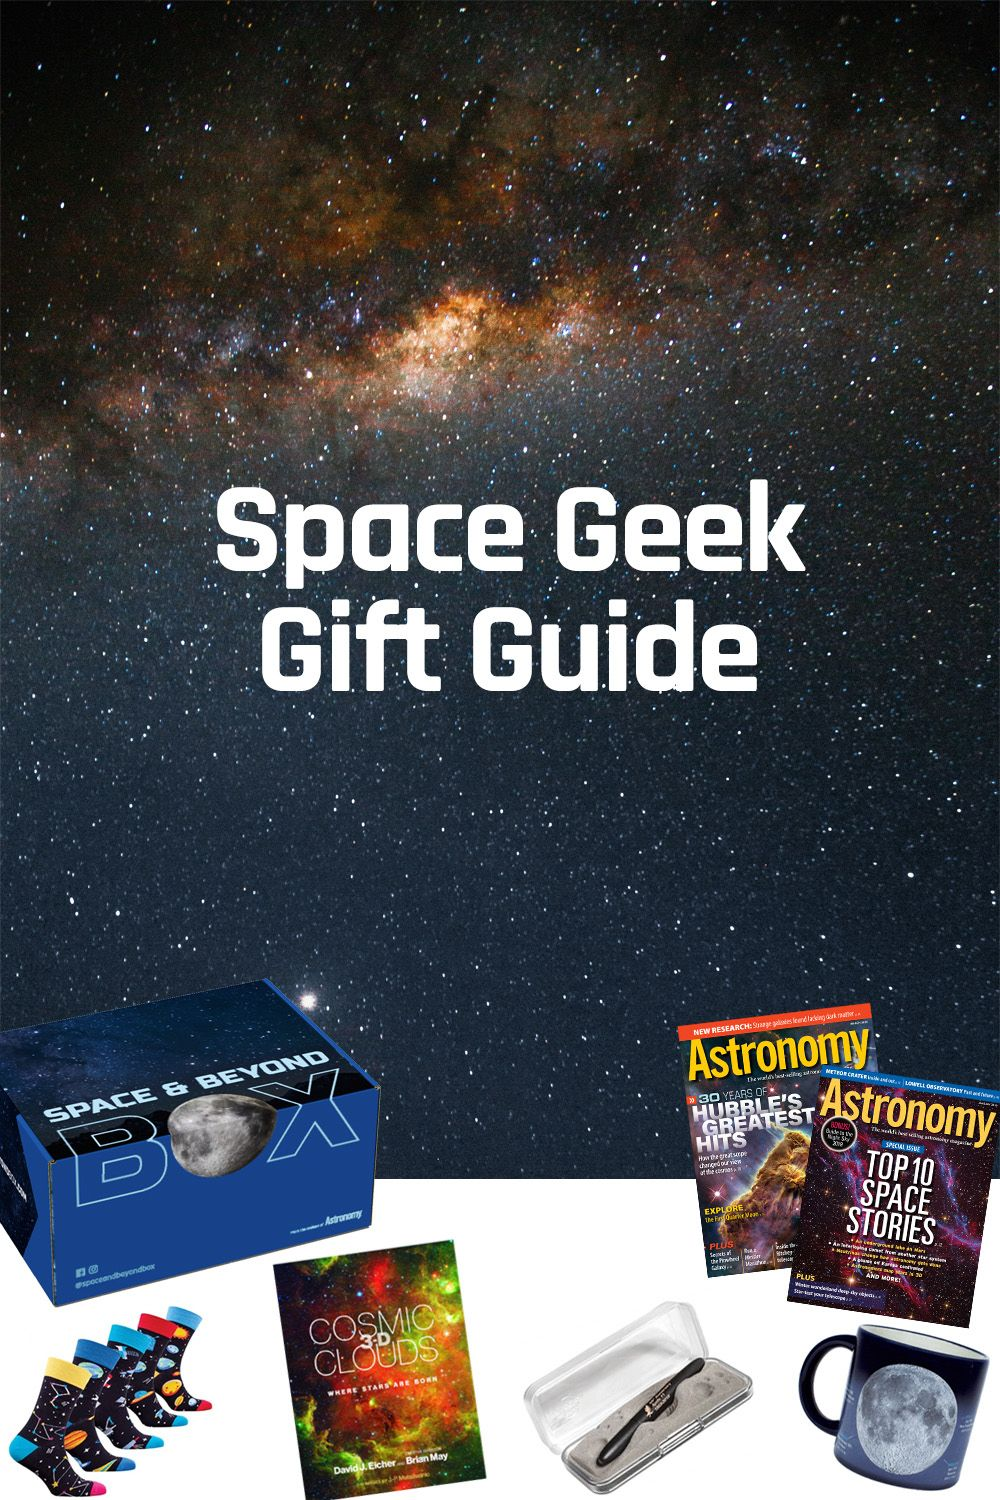 10 Unique Gifts For Dads Who Love Astronomy And Skygazing In 2020 Unique Gifts For Dad Gifts For Dad Space Gift